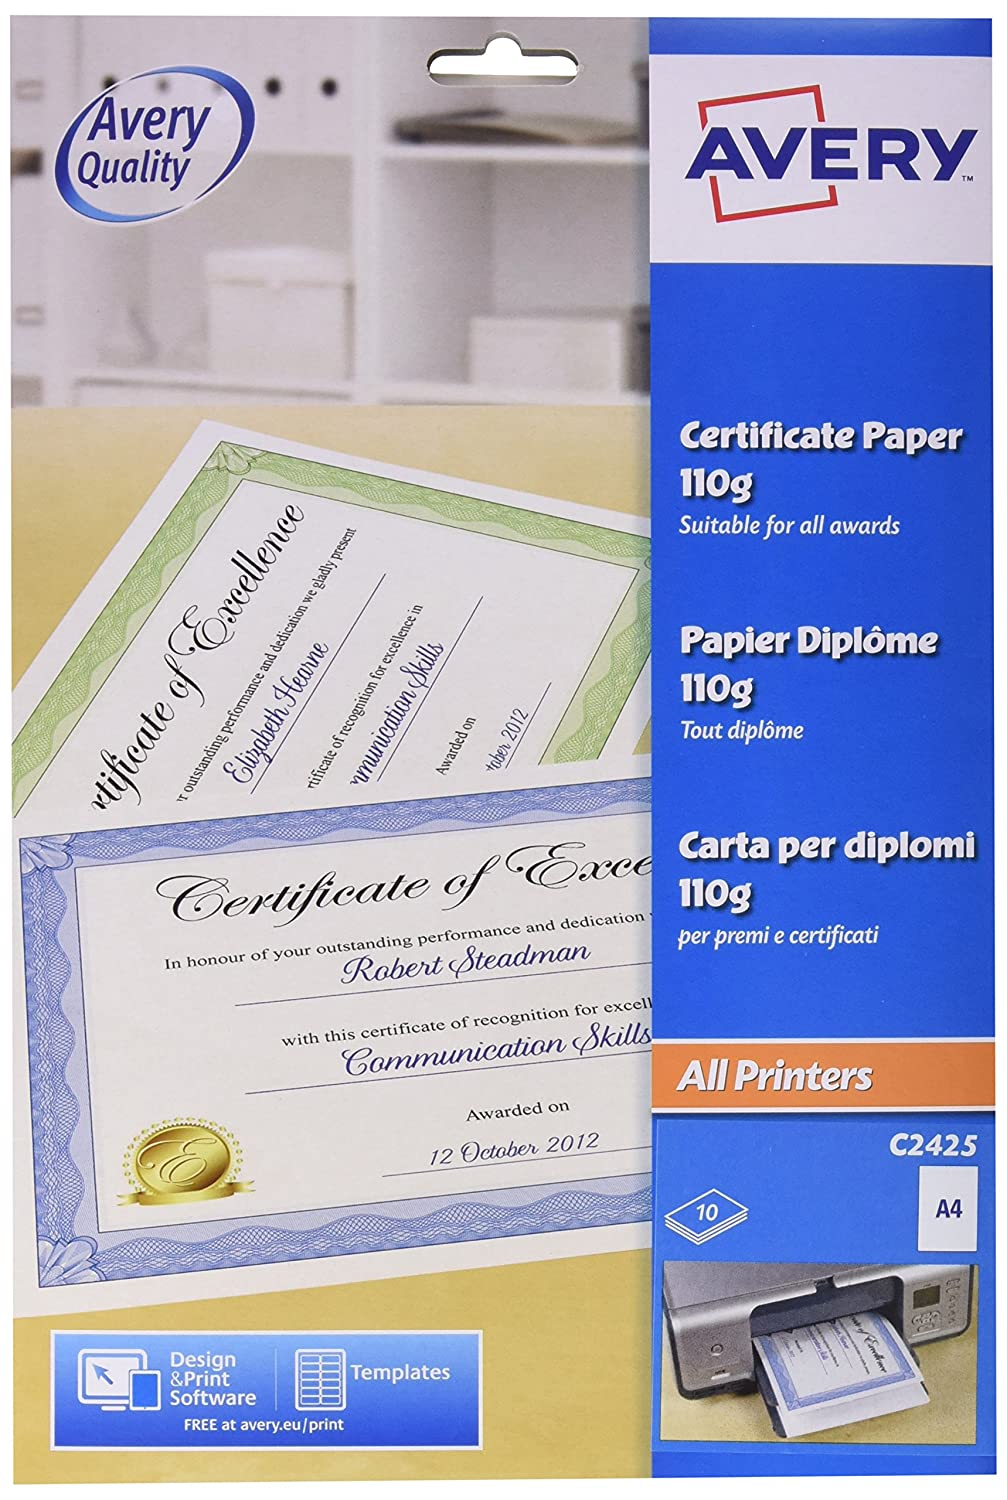 Avery uk c2425 a4 certificate paper blue certificate border 10 avery uk c2425 a4 certificate paper blue certificate border 10 a4 sheets per pack amazon office products 1betcityfo Images